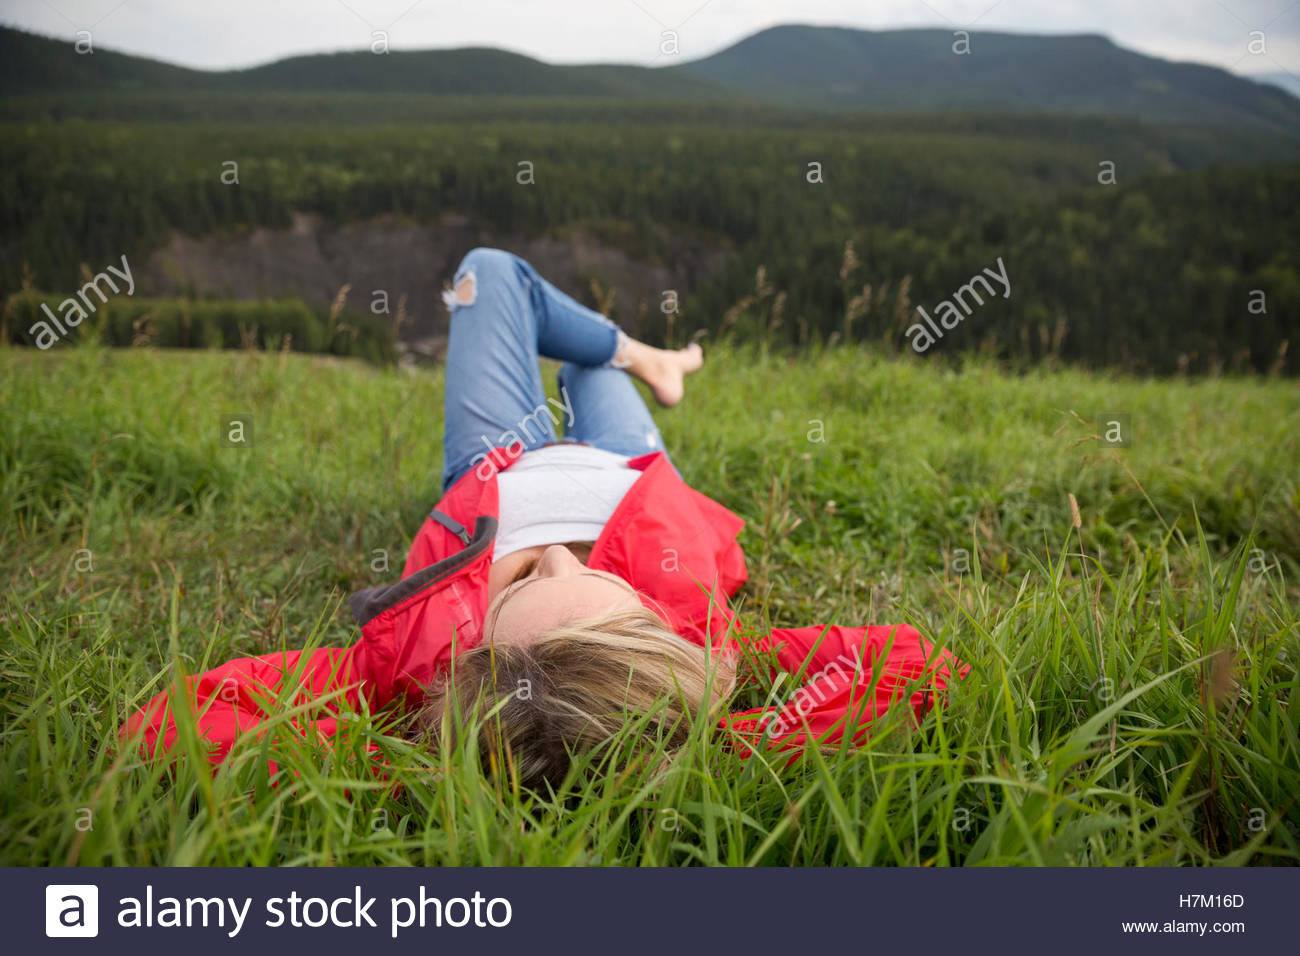 Woman relaxing laying in grass in remote rural field - Stock Image